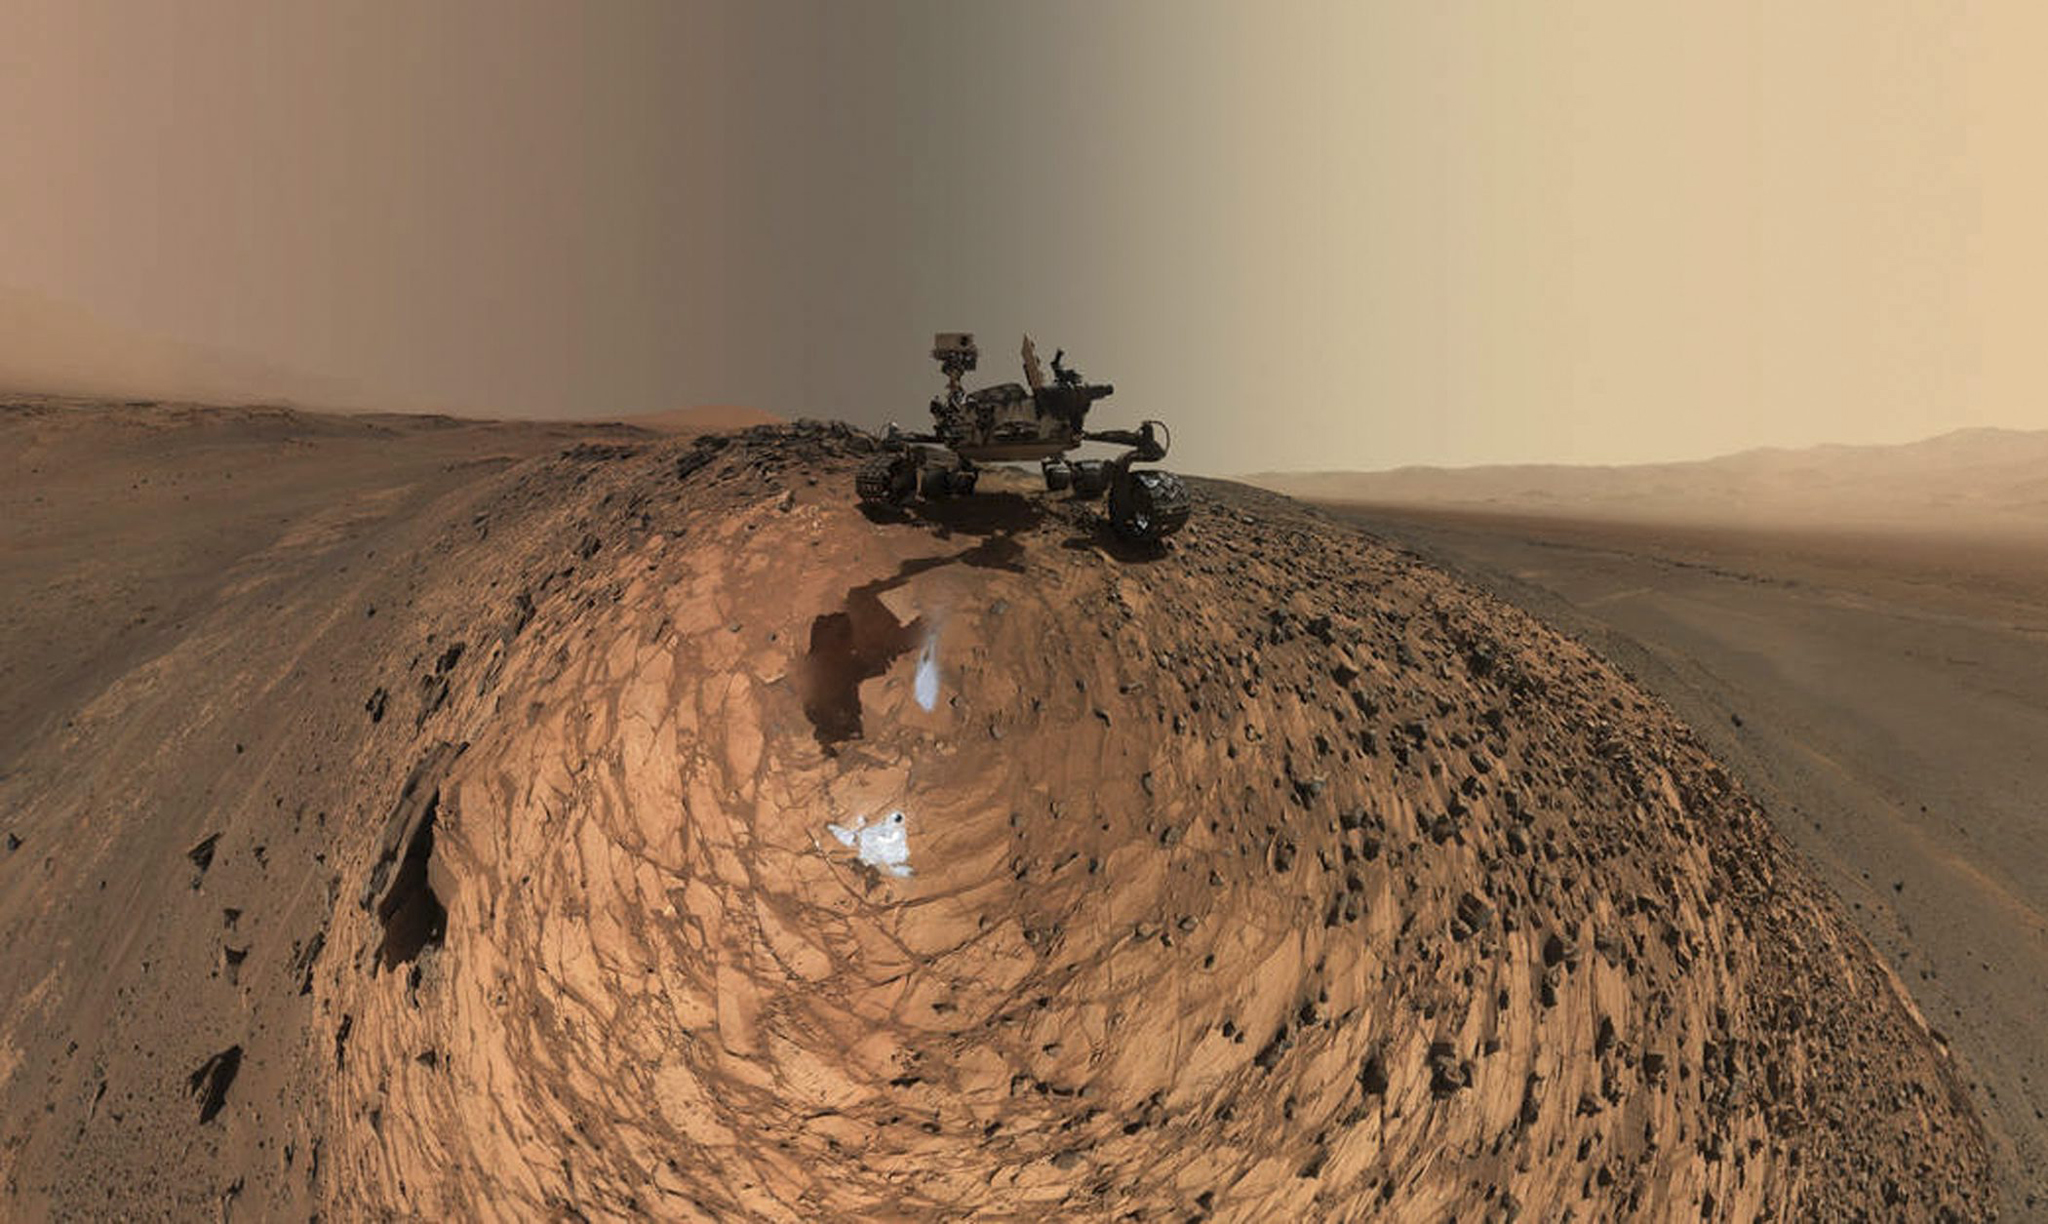 low-angle self-portrait of NASA's Curiosity Mars rover...epa04890875 A handout picture released by NASA on 20 August 2015 shows a low-angle self-portrait of NASA's Curiosity Mars rover  vehicle above the 'Buckskin' rock target, in the 'Marias Pass' area of lower Mount Sharp on Mars, where the mission collected its seventh drilled sample, taken on 05 August 2015. The scene combines dozens of images taken by Curiosity's Mars Hand Lens Imager (MAHLI) during the 1,065th Martian day, or sol, of the rover's work on Mars. For scale, the rover's wheels are 20 inches (50 centimeters) in diameter and about 16 inches (40 centimeters) wide.  EPA/NASA/JPL-Caltech/MSSS  HANDOUT EDITORIAL USE ONLY